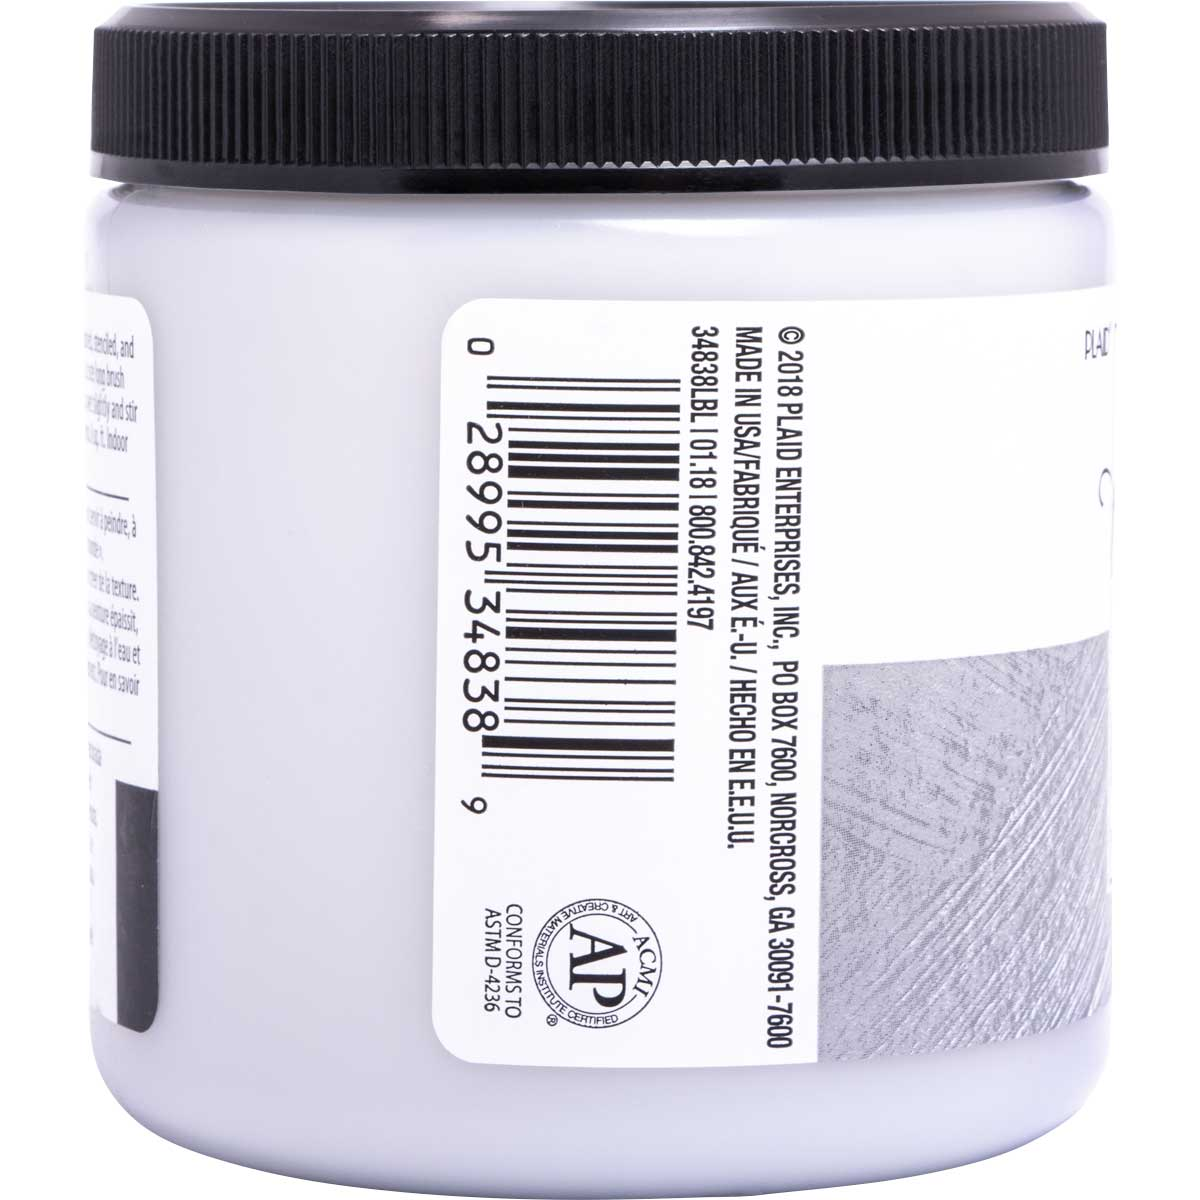 FolkArt ® Home Decor ® Texture Chalk™ - Dovetail, 8 oz.